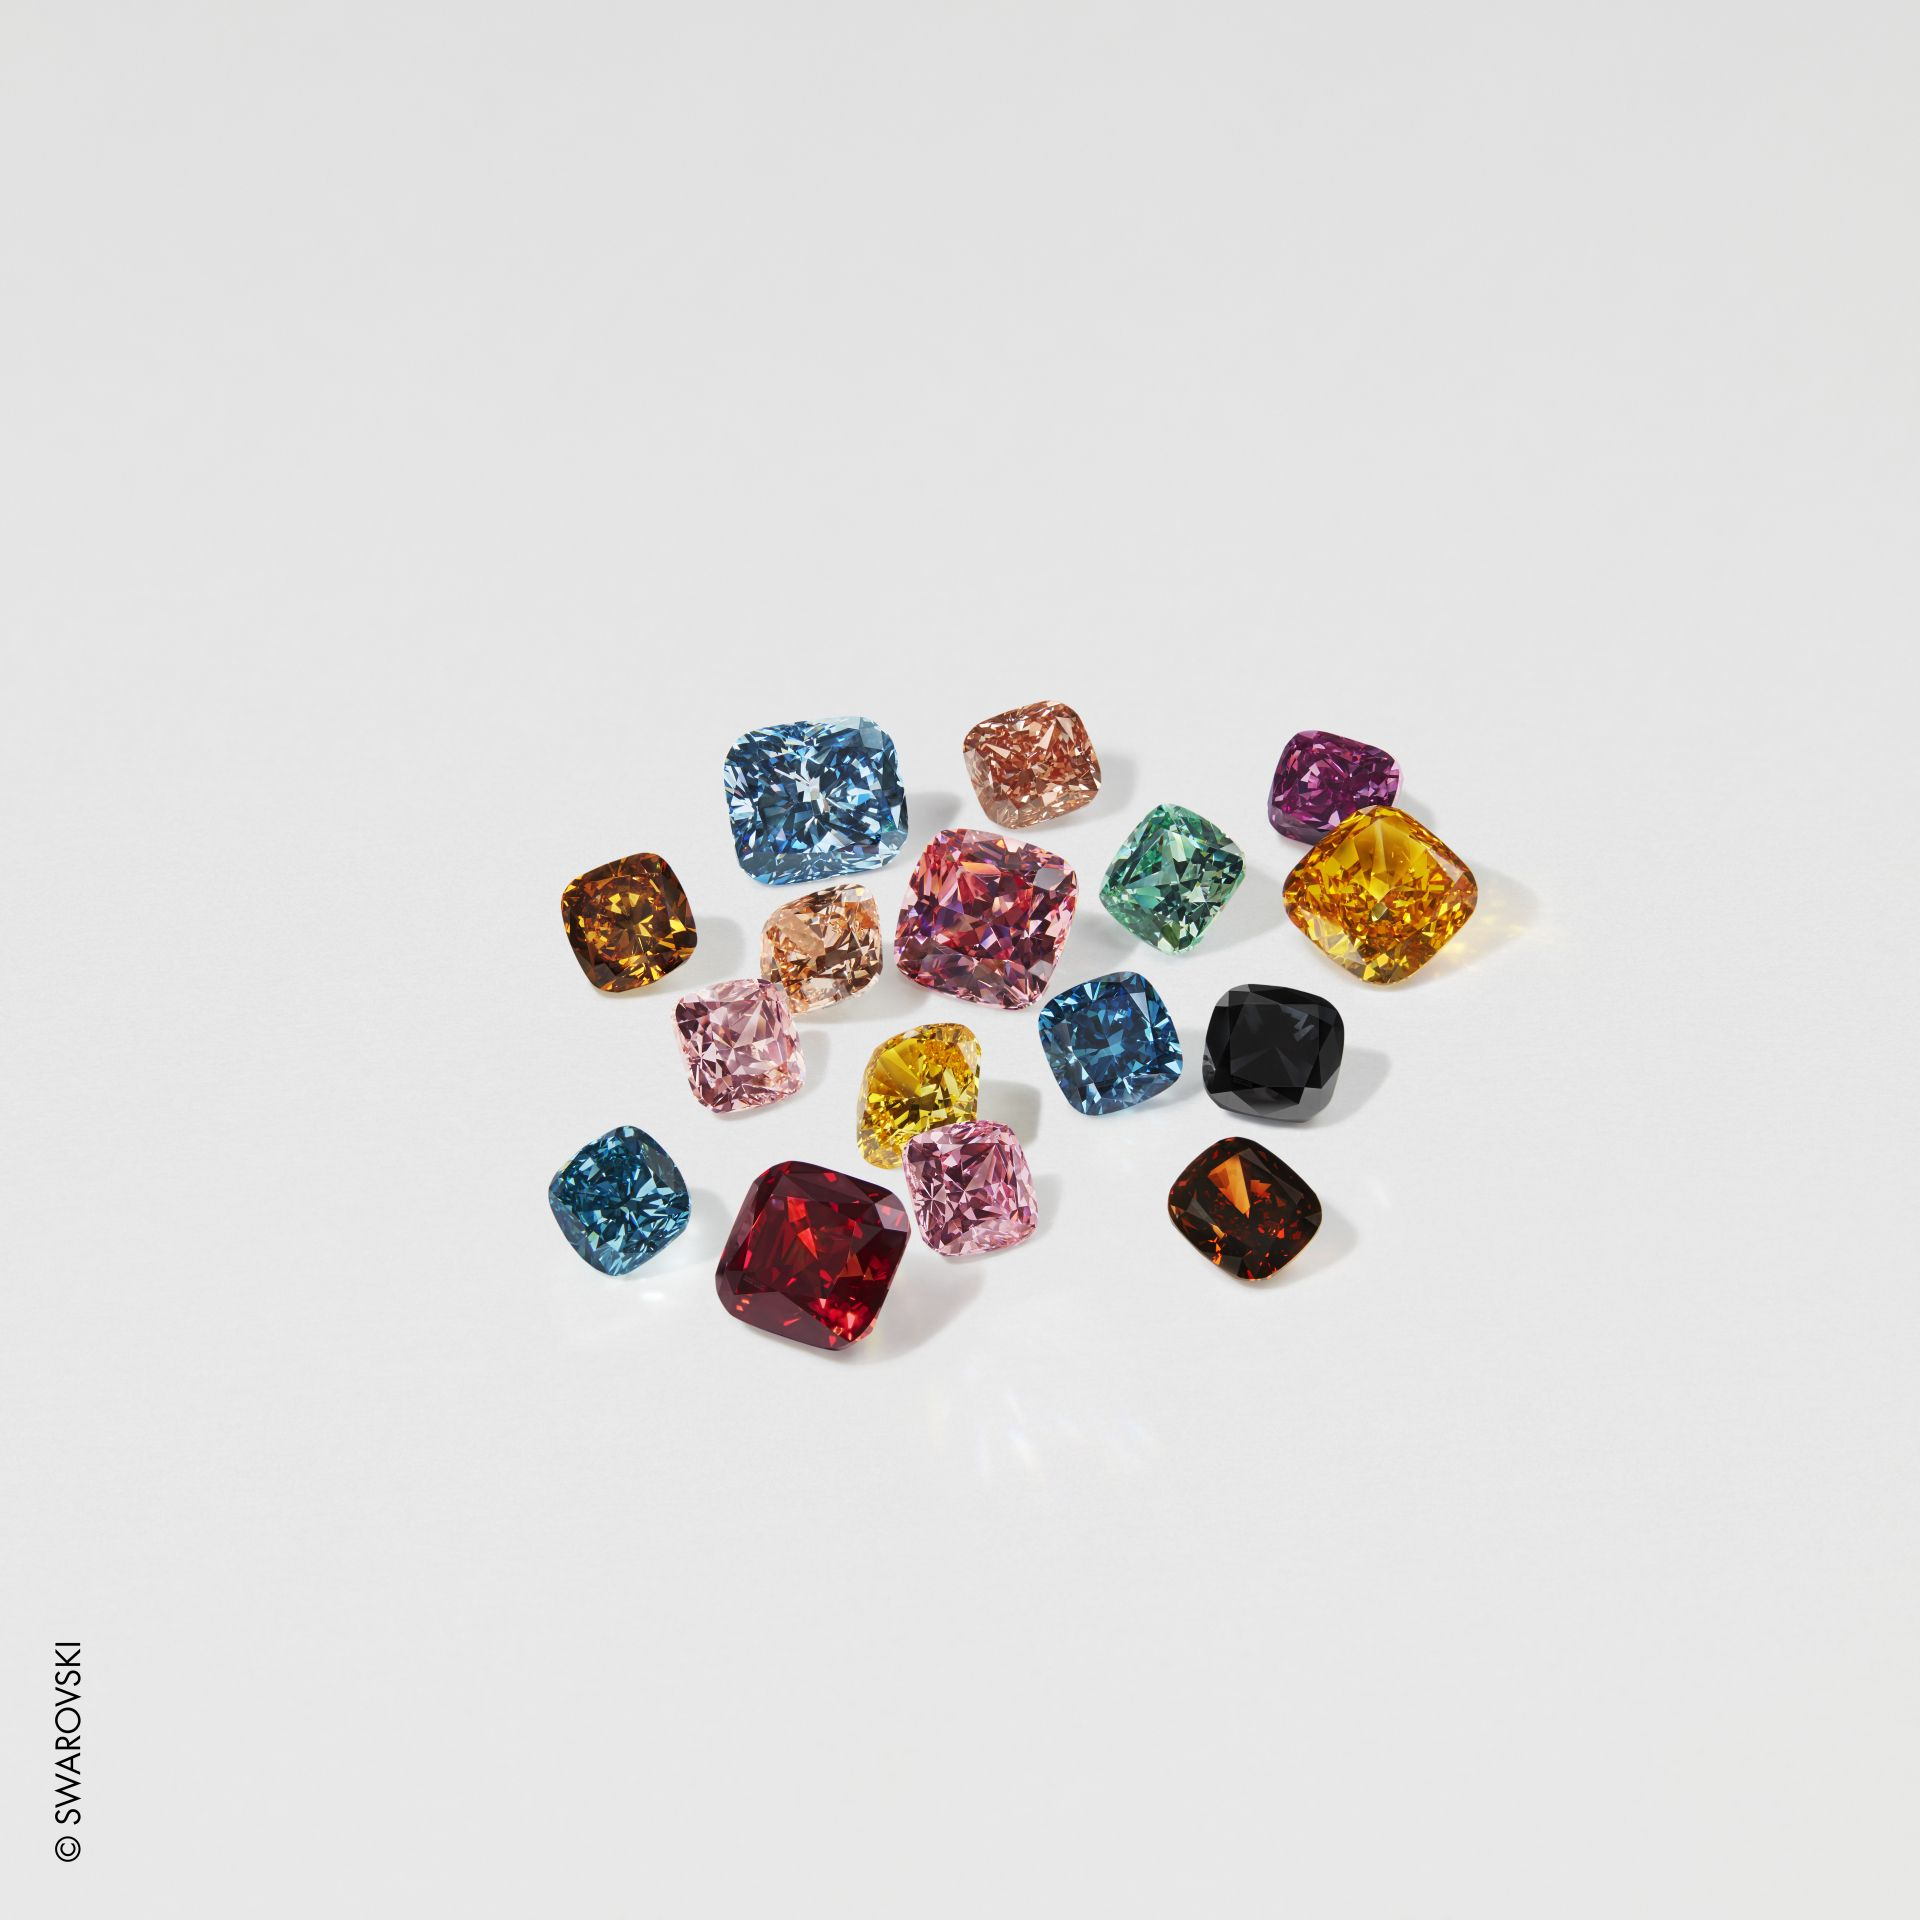 Swarovski Created Diamonds in new colors for 2020  © Swarovski